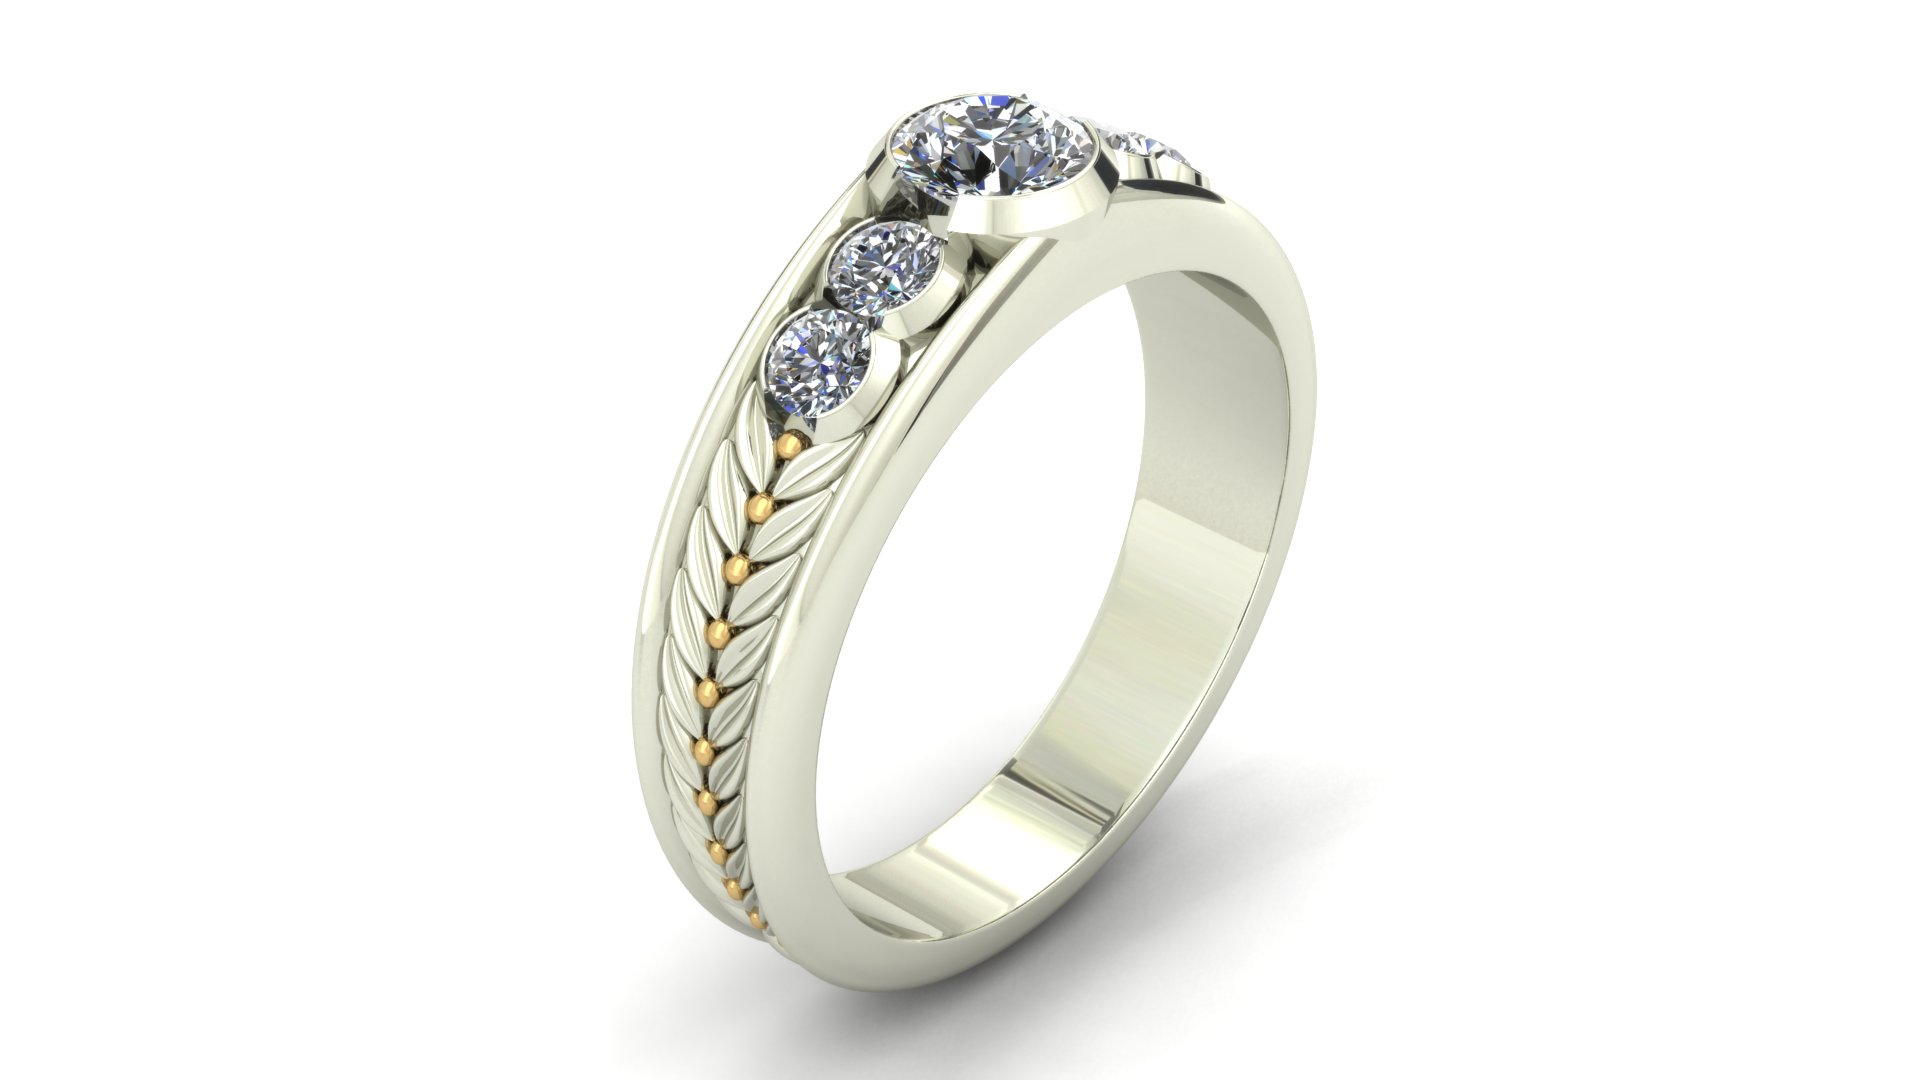 OLIVE LEAF ENGAGEMENT RING